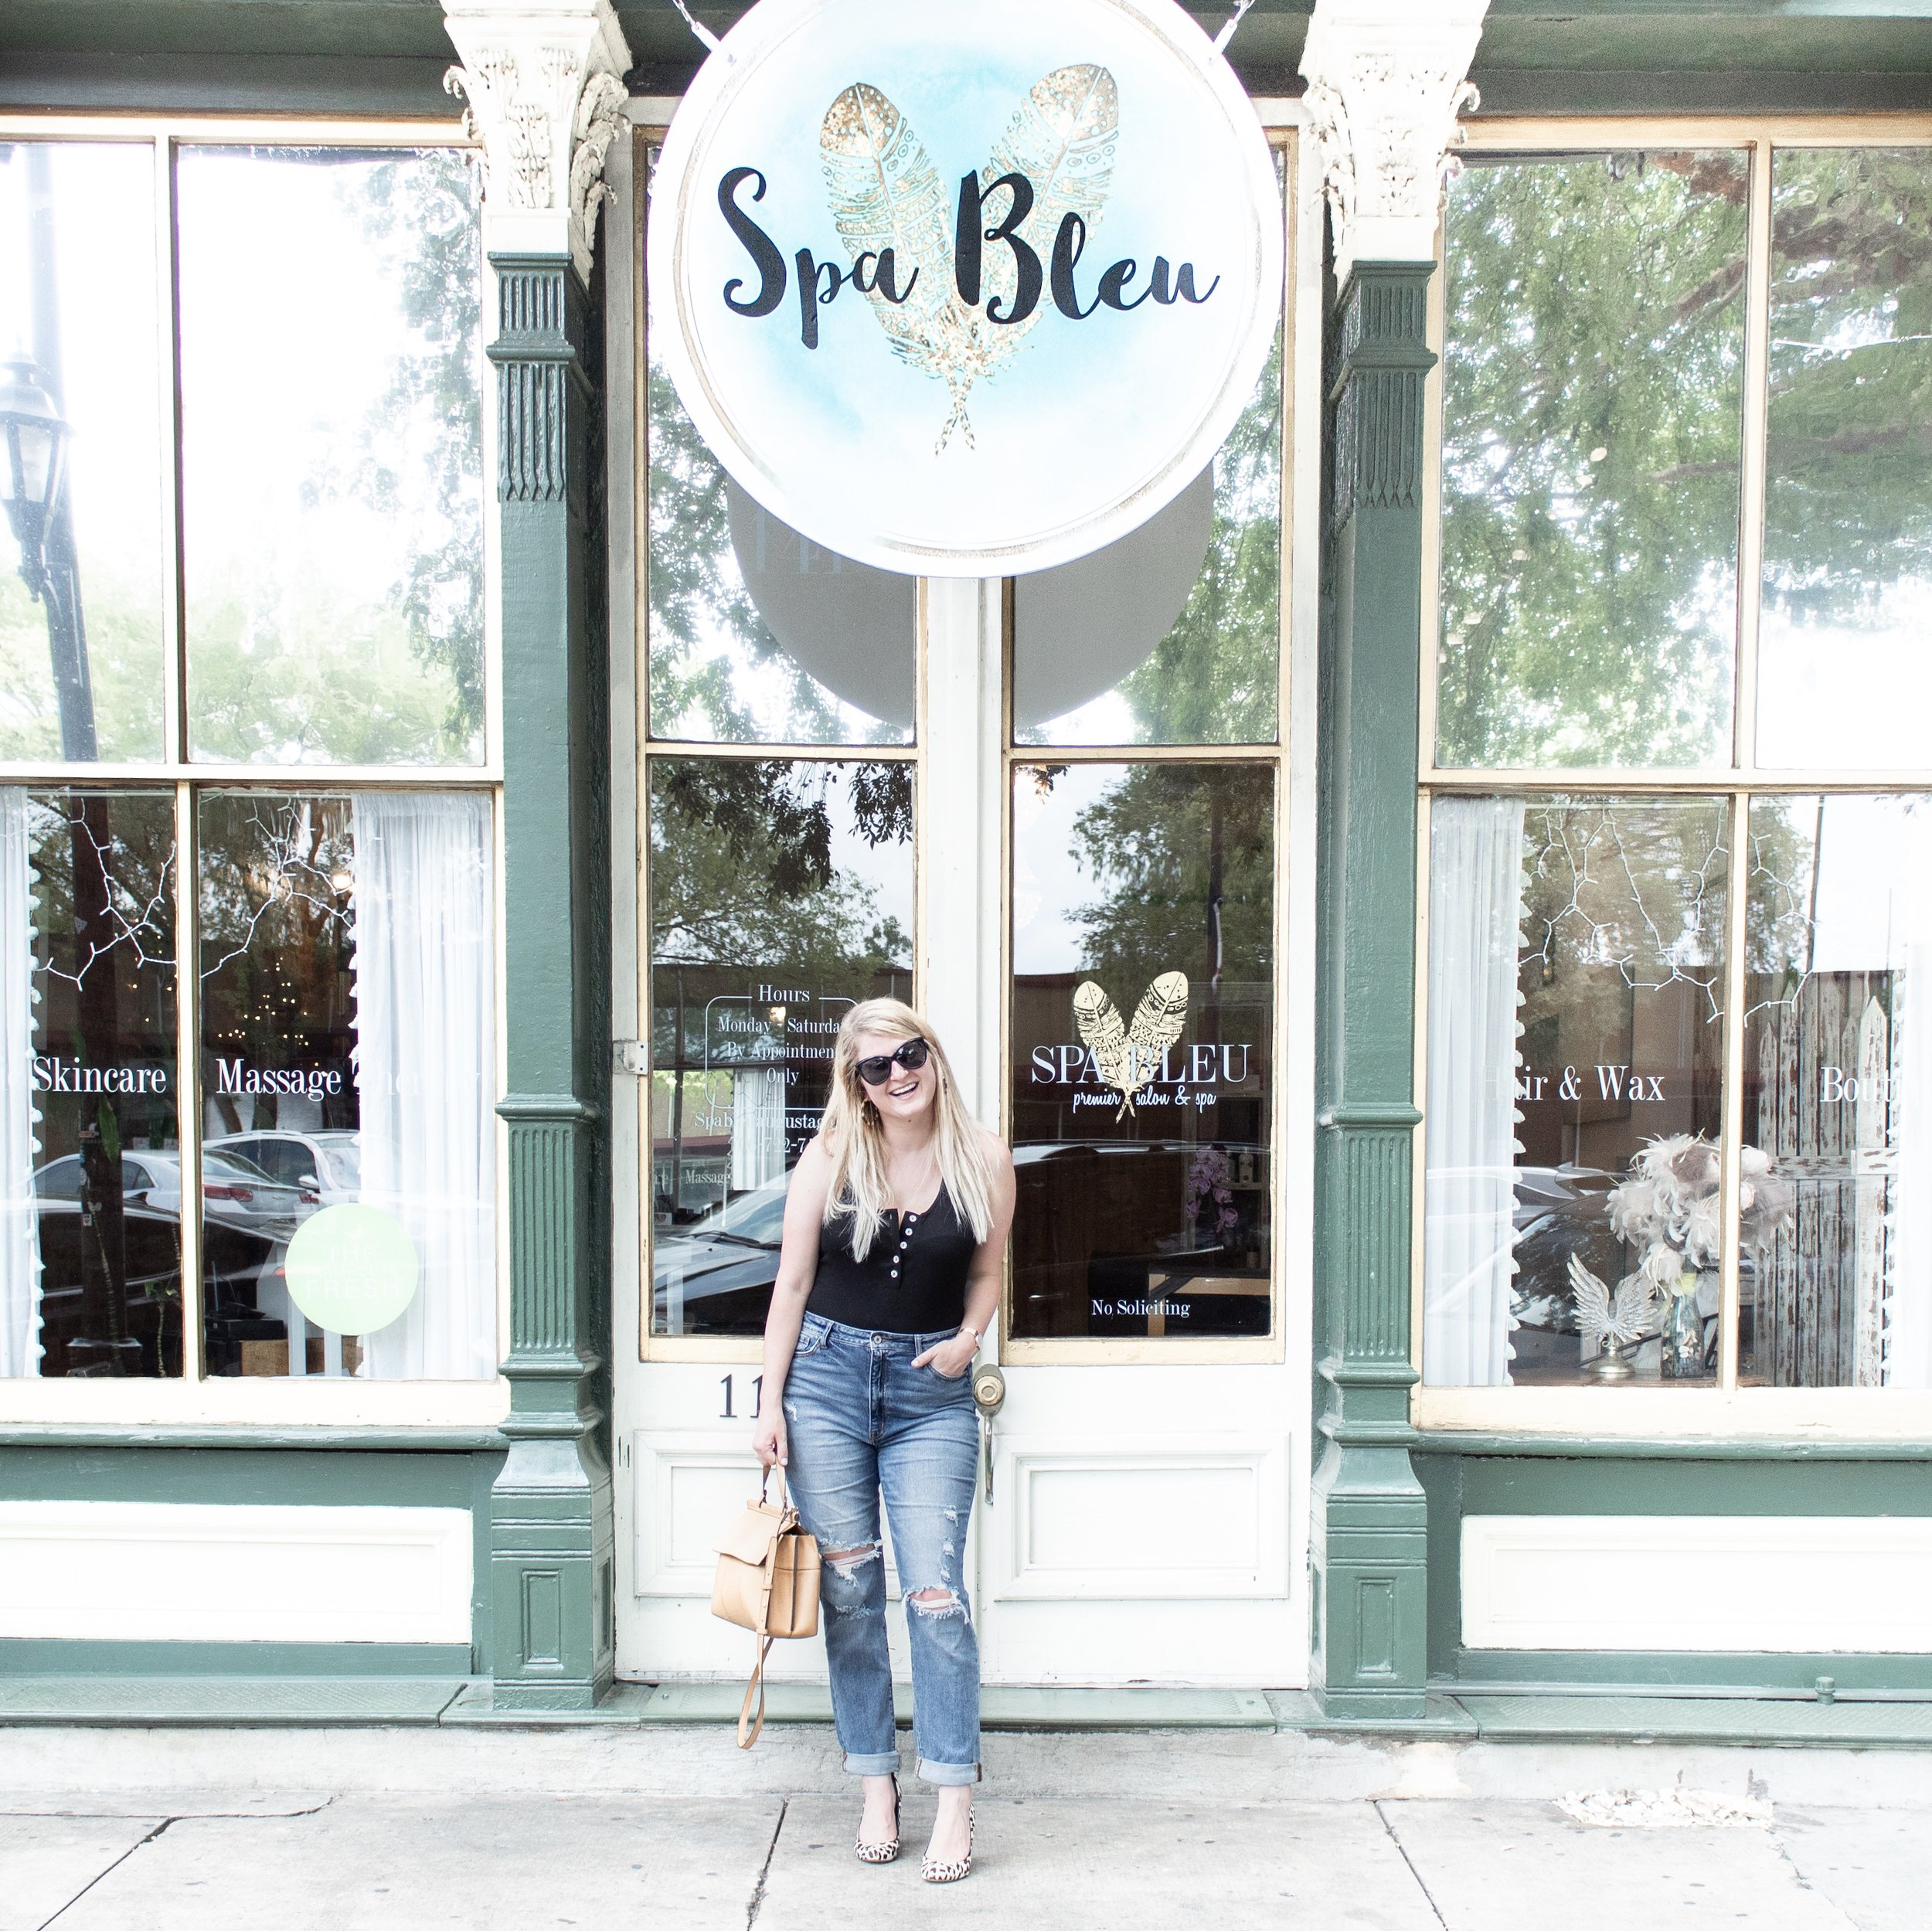 Spa Bleu  - I hadn't had a facial in 4 years when the sweet owner of Spa Bleu invited me in… By the end of our 2 hours, Mirenda had waxed and tinted my eyebrows, given me a facial including extractions, and sent me home with a new skin care routine to help with my super oily t-zone and zitty flare-ups!!  Her super sweet personality, combined with customer service like that, her spa will absolutely become my go-to ME-day spot!  Not to mention that the brow tint alone changed my entire outlook on how I felt about myself without makeup on… The semi-permanent color defined my face enough to give me the confidence to not always have to have some on!!